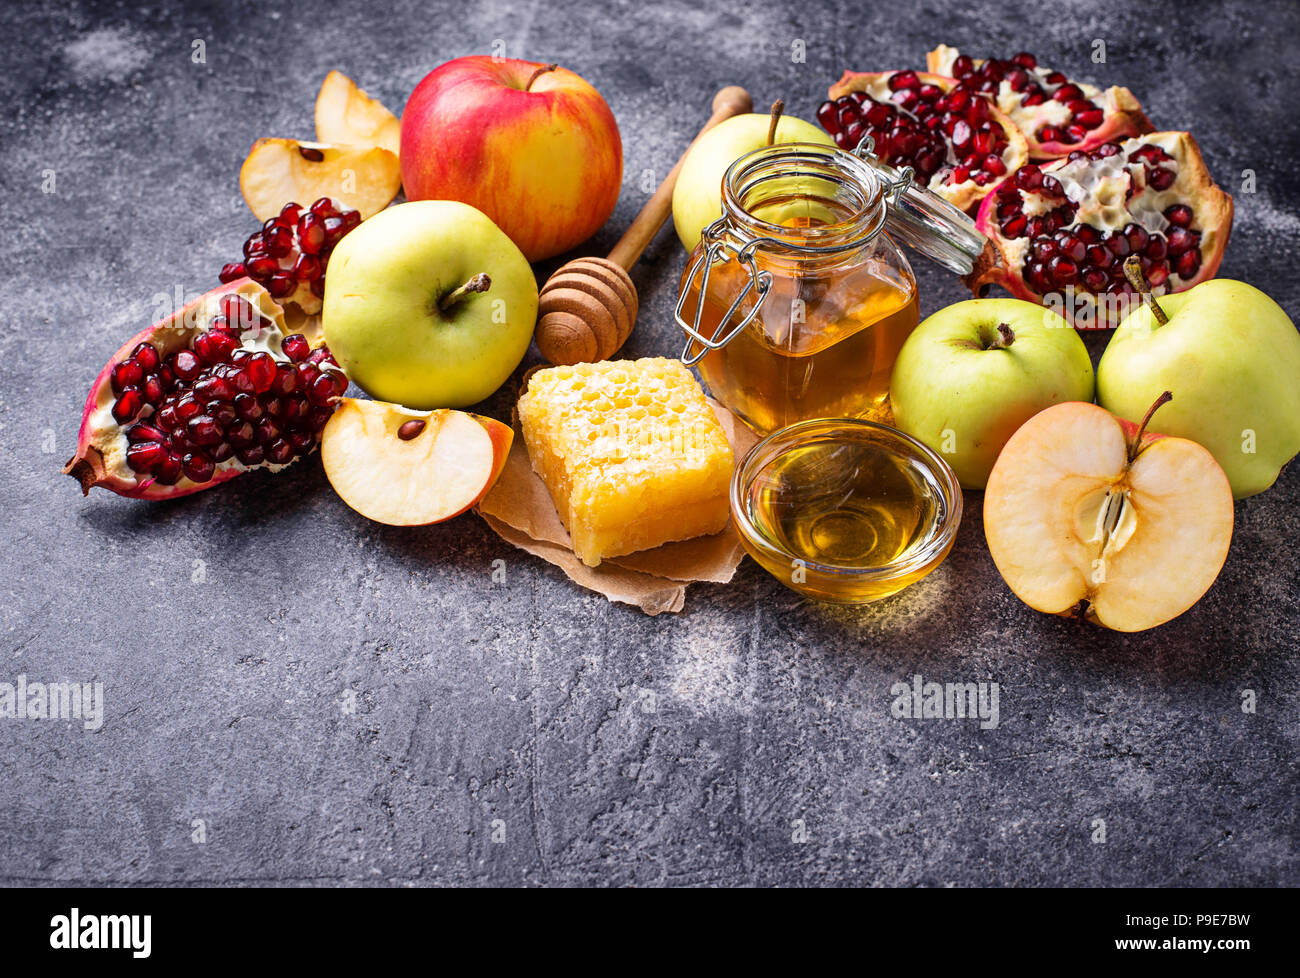 Honey, apple and pomegranate for Rosh Hashana - Stock Image